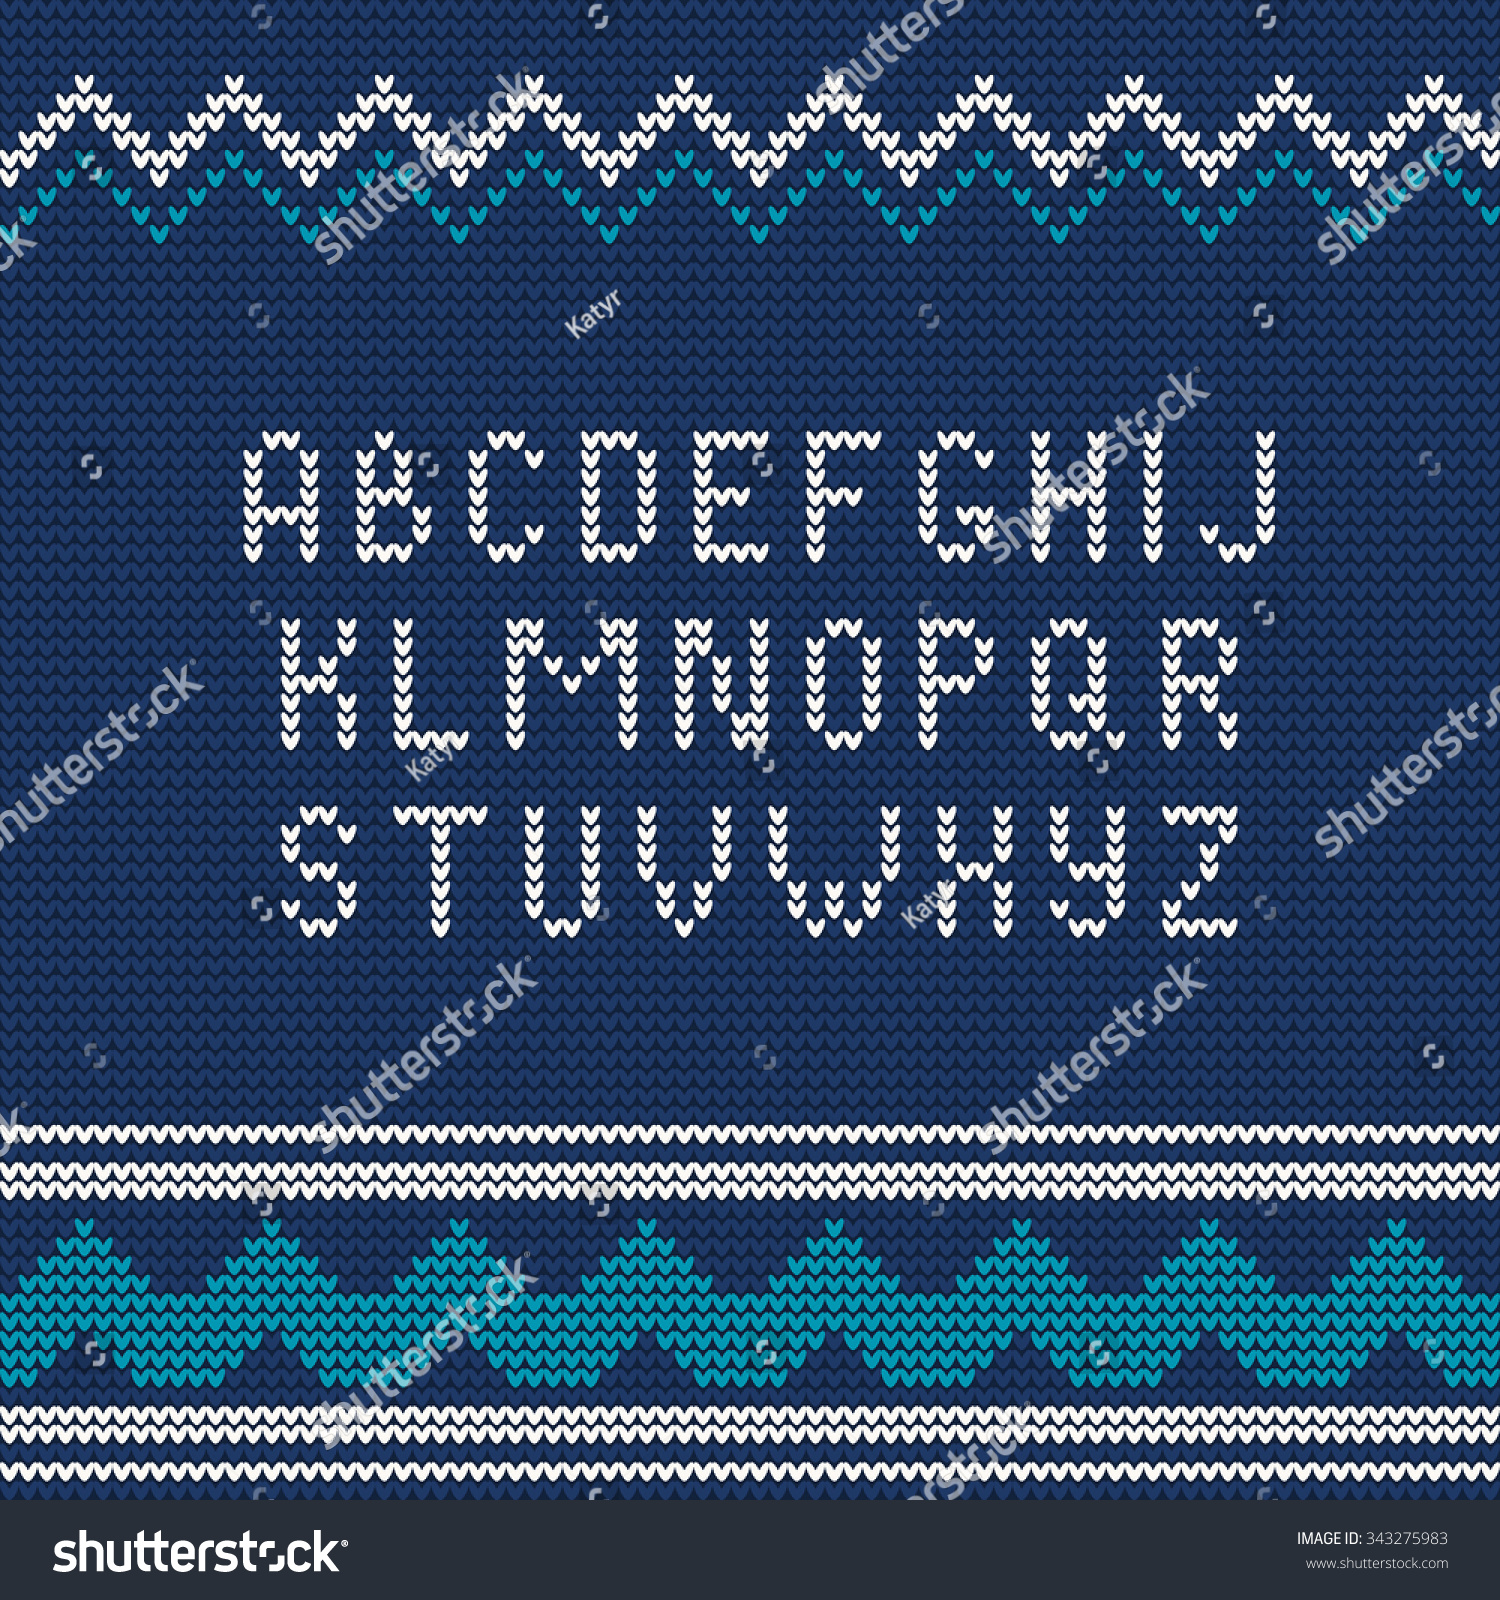 Knitting Letters Template : Vector illustration of christmas knitted font ugly sweater